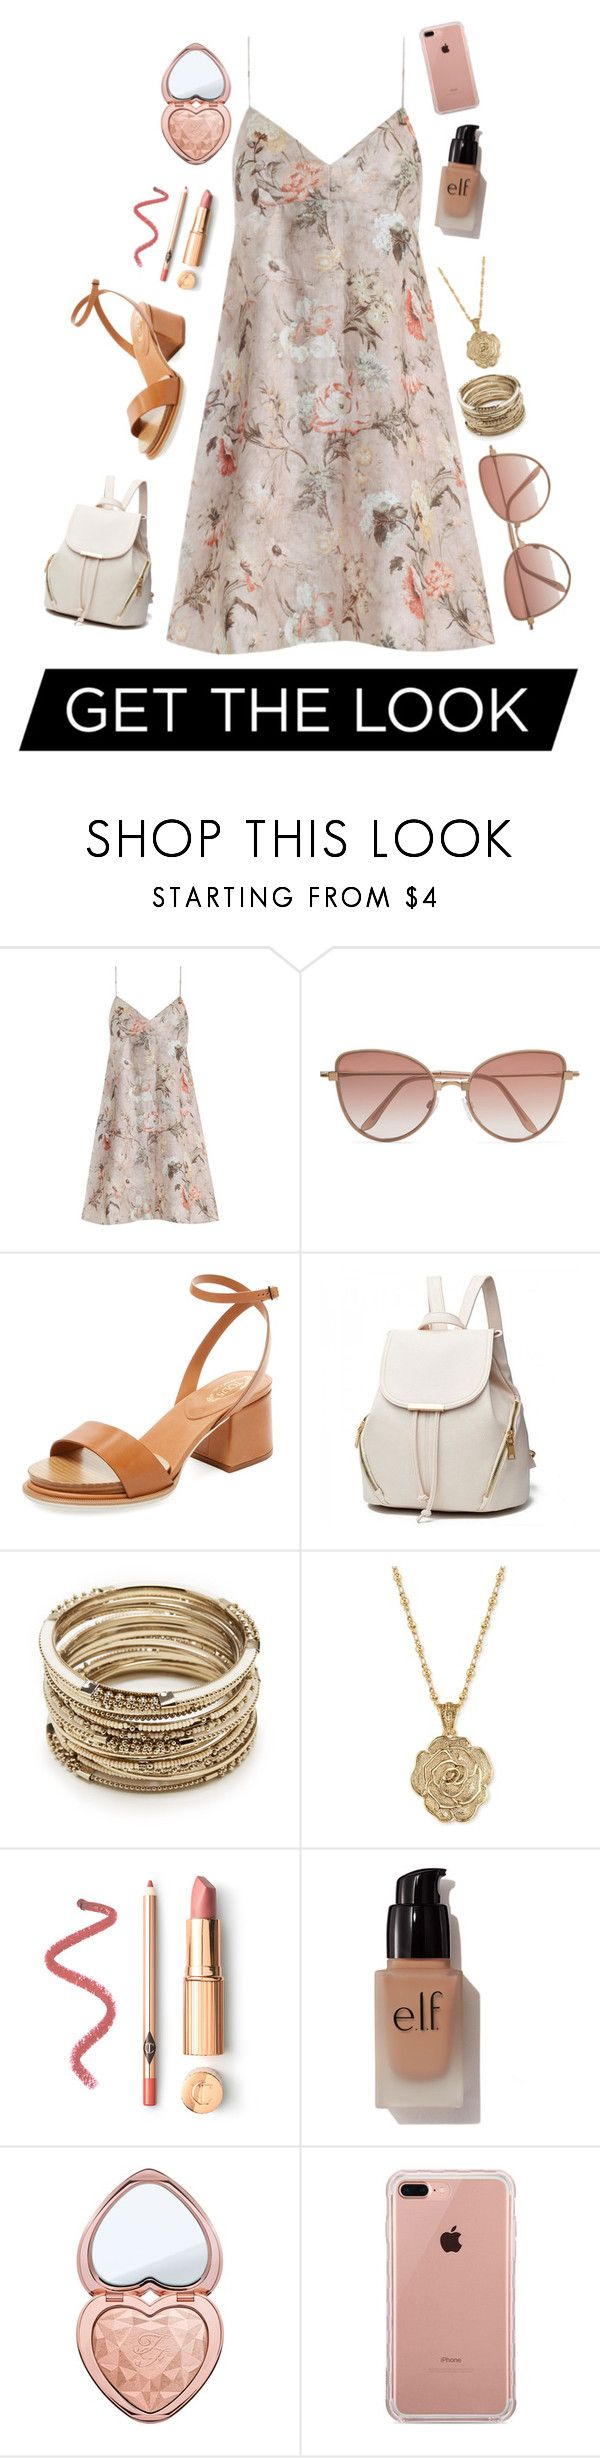 """""""• G e t  t h e  l o o k •"""" by alexandra-3-grace ❤ liked on Polyvore featuring Zimmermann, Cutler and Gross, Tod's, Sole Society, 2028, e.l.f., Too Faced Cosmetics and Belkin"""